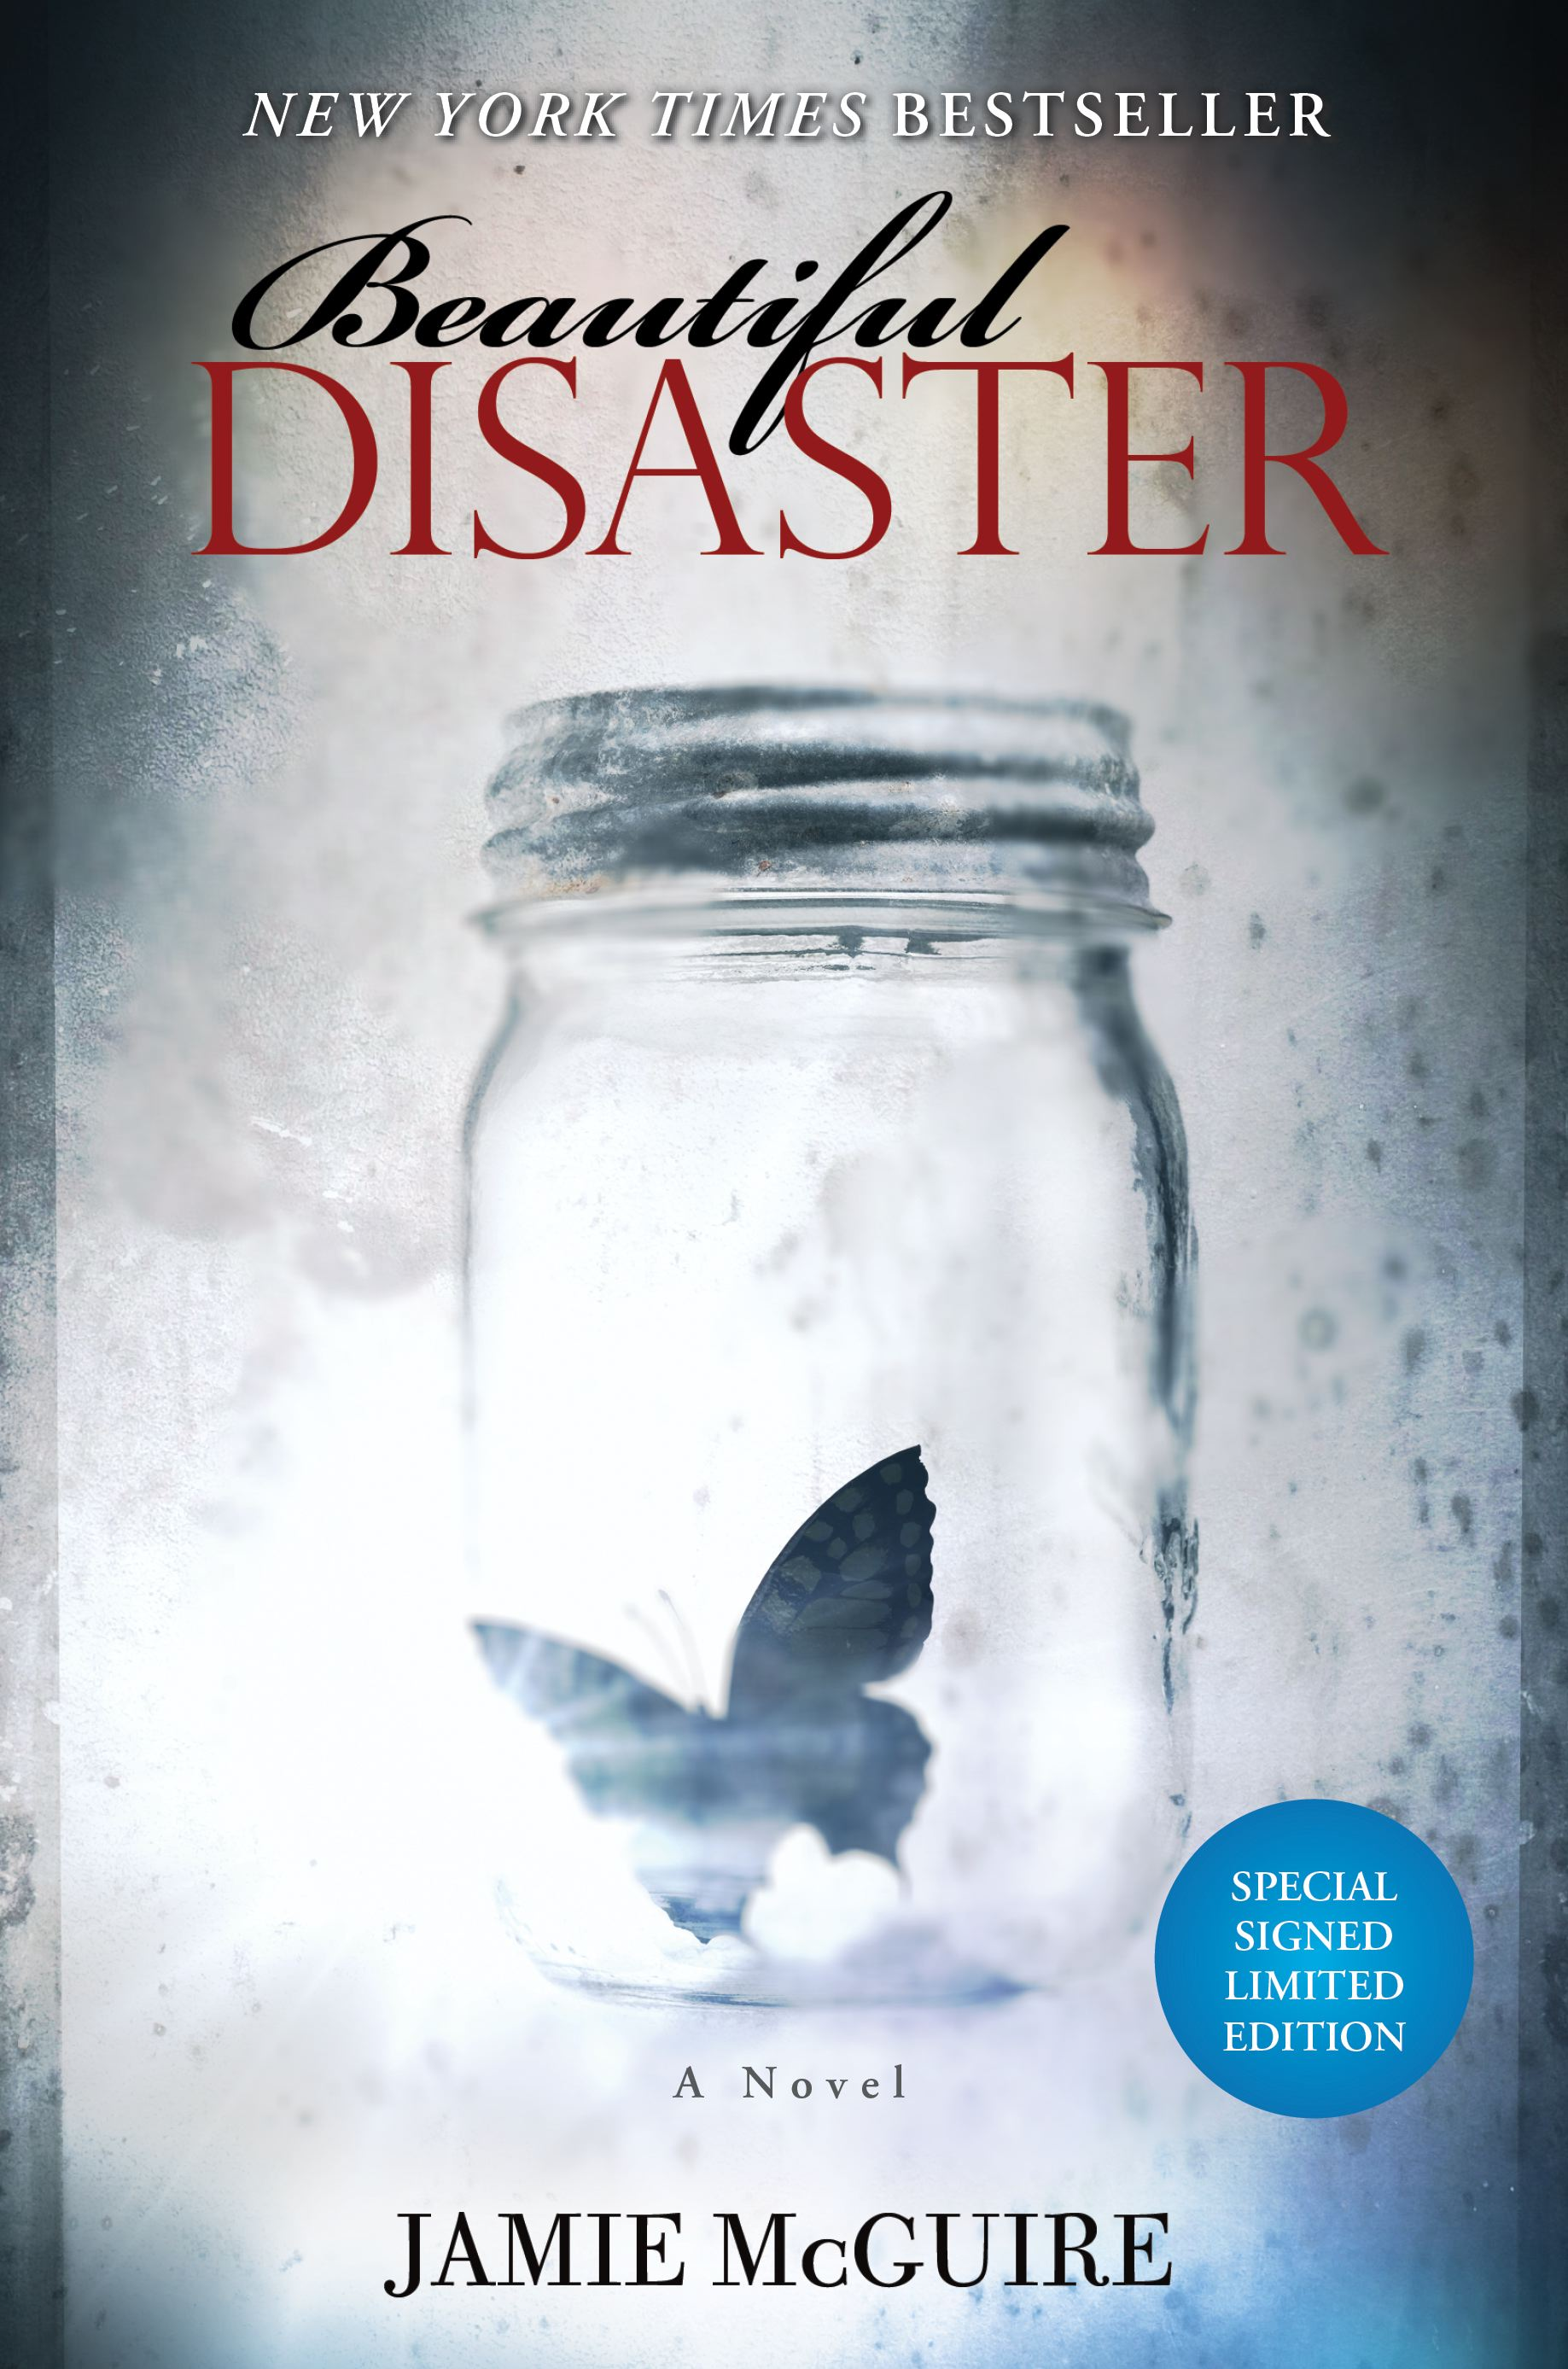 Beautiful disaster signed limited edition 9781476719078 hr